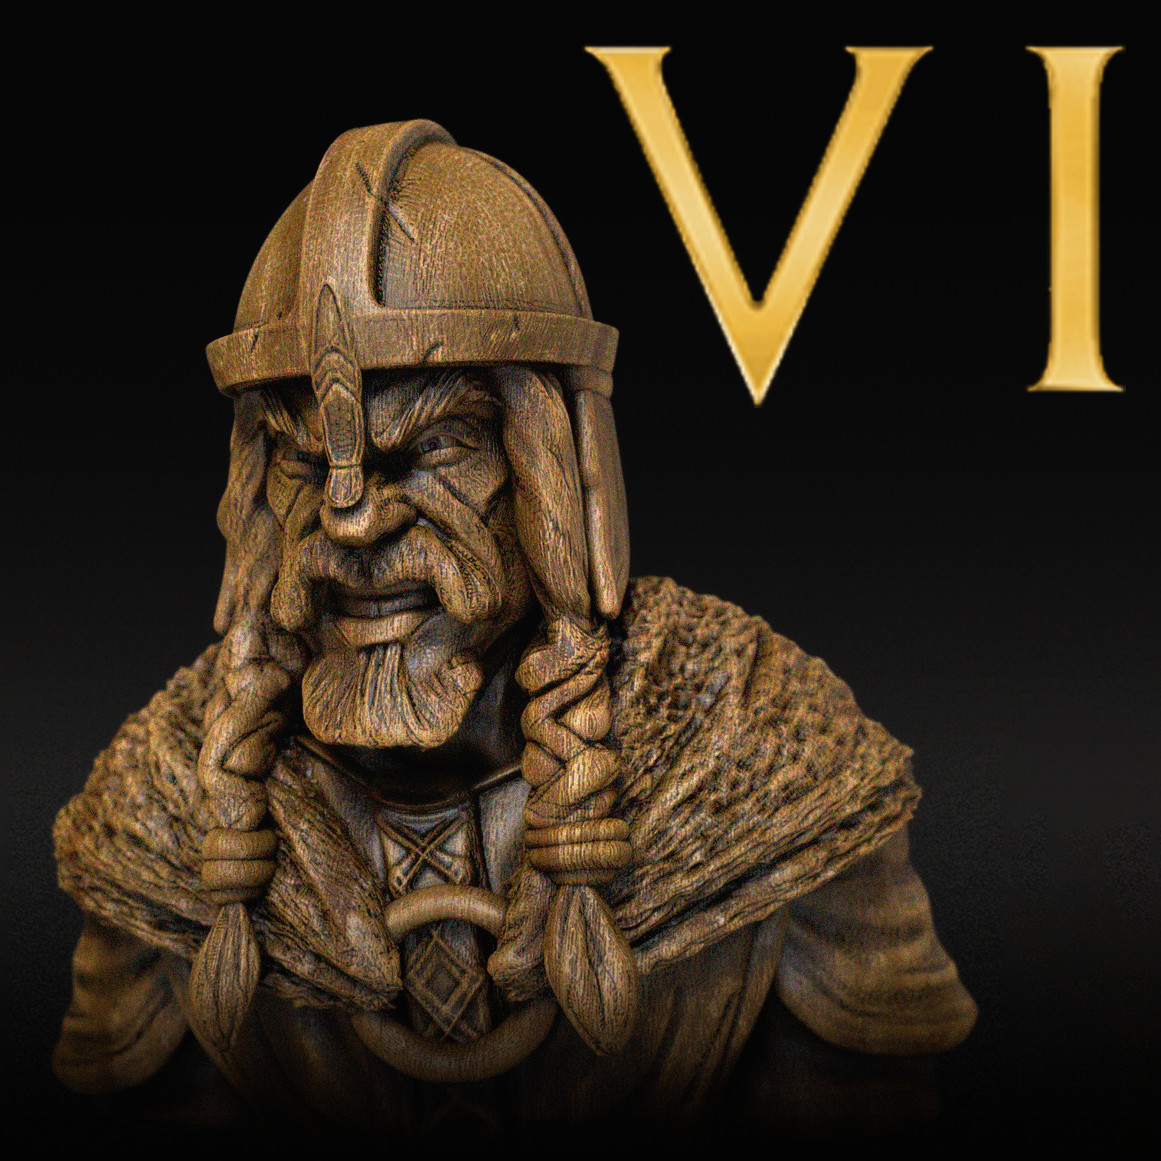 Viking DLC Leaders